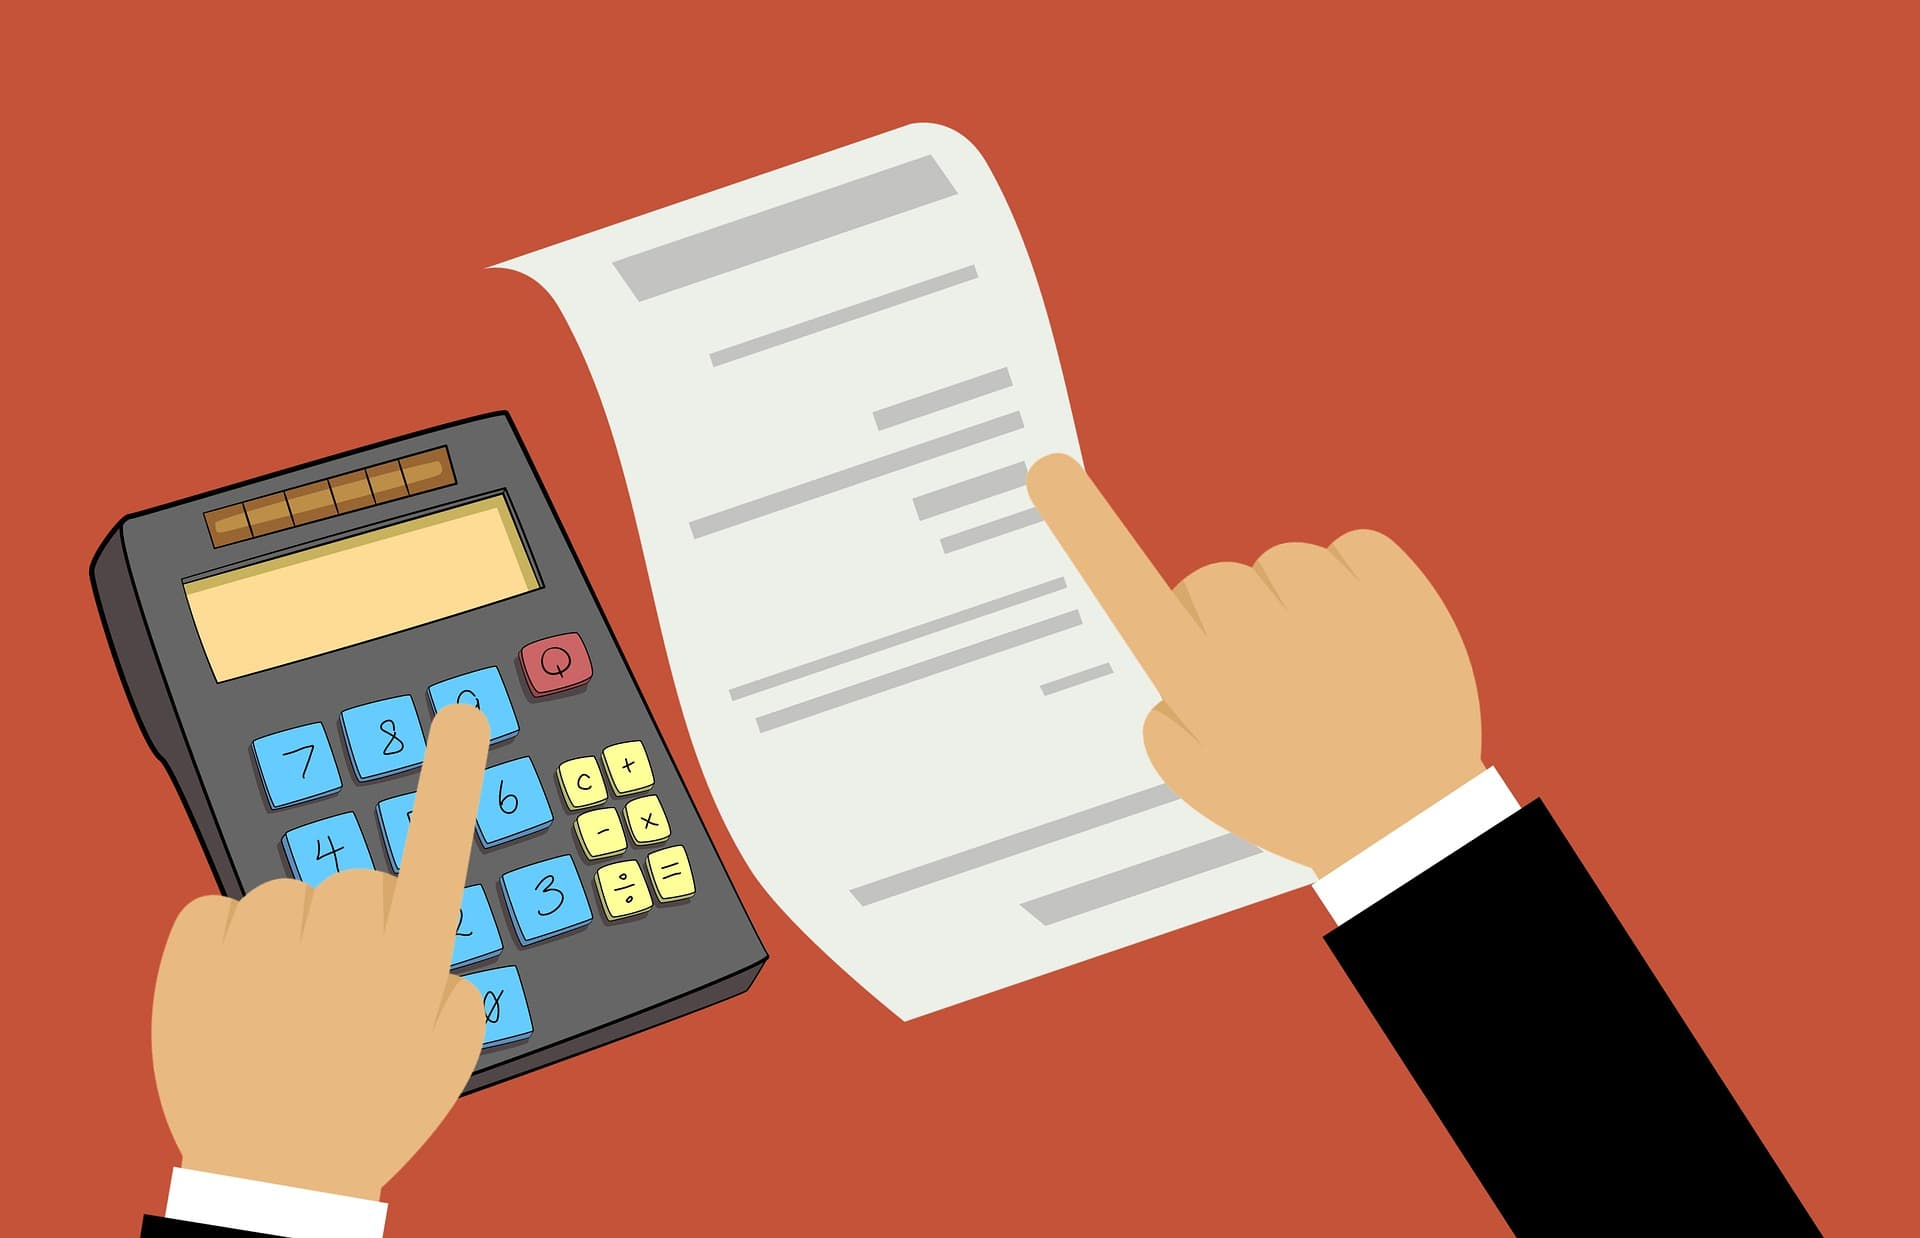 A carton of a calculator and a statement symbolises the invoice factoring that goes into maintaining a positive cash flow